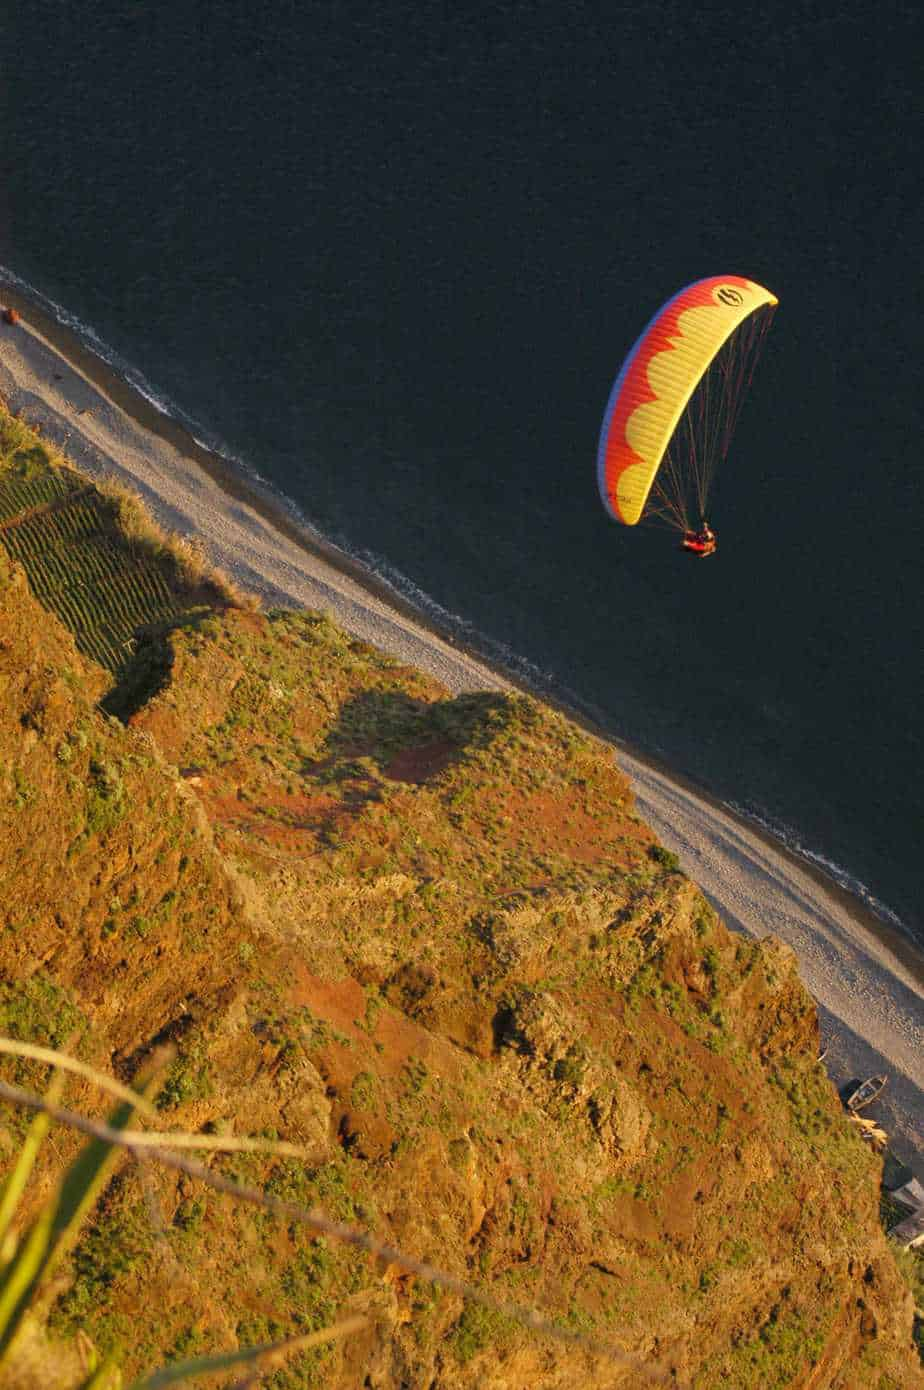 Paragliding - Paul Do mar